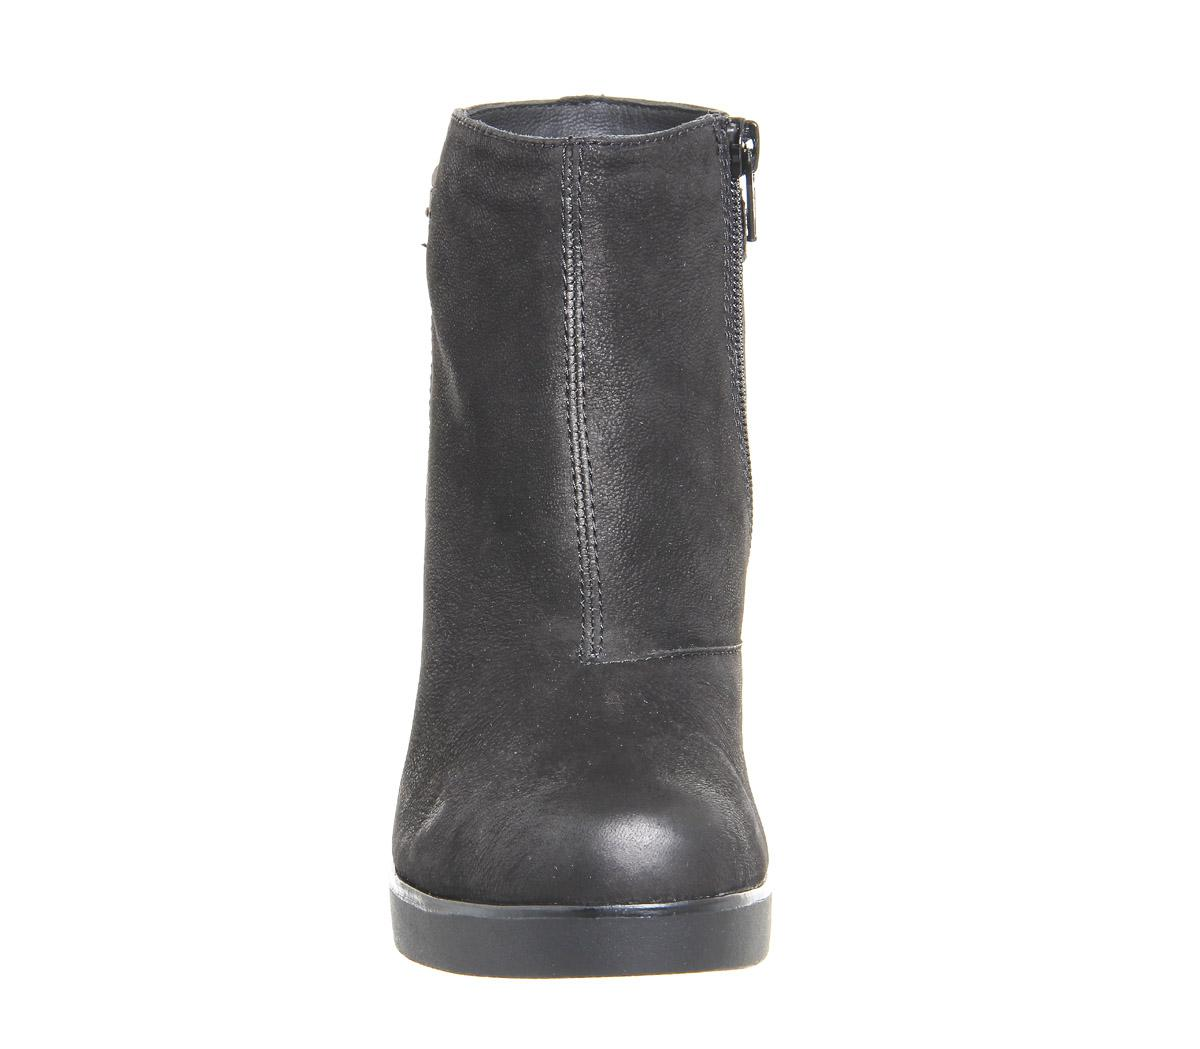 65f8031504 Vagabond Valencia Wedge Boots in Black - Lyst